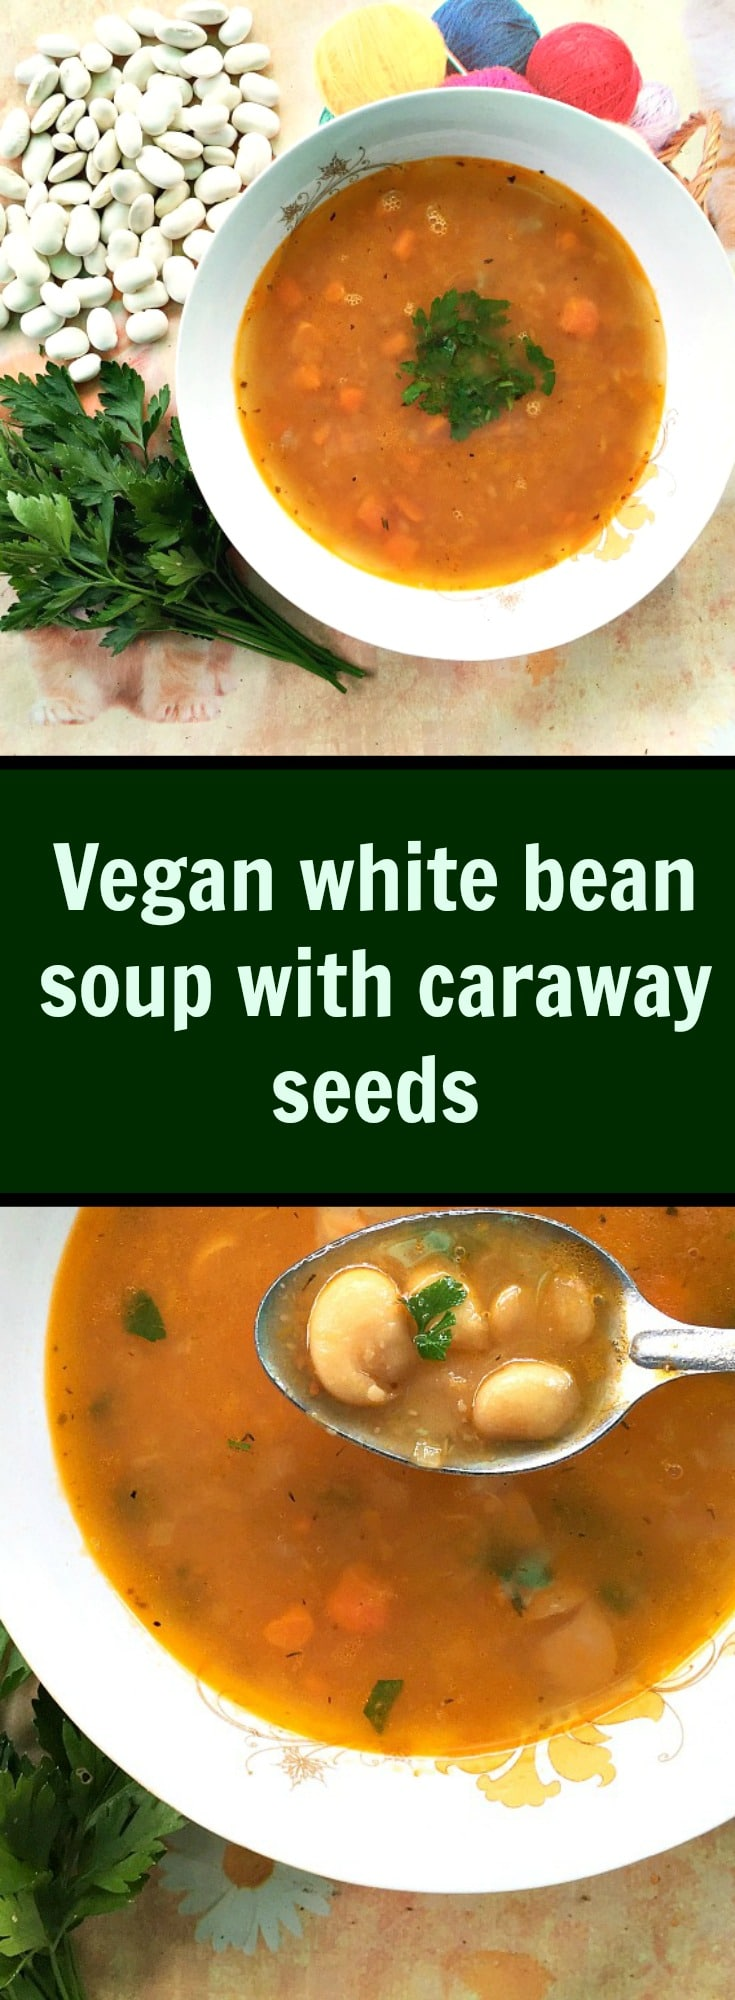 Vegan white bean soup with caraway seeds